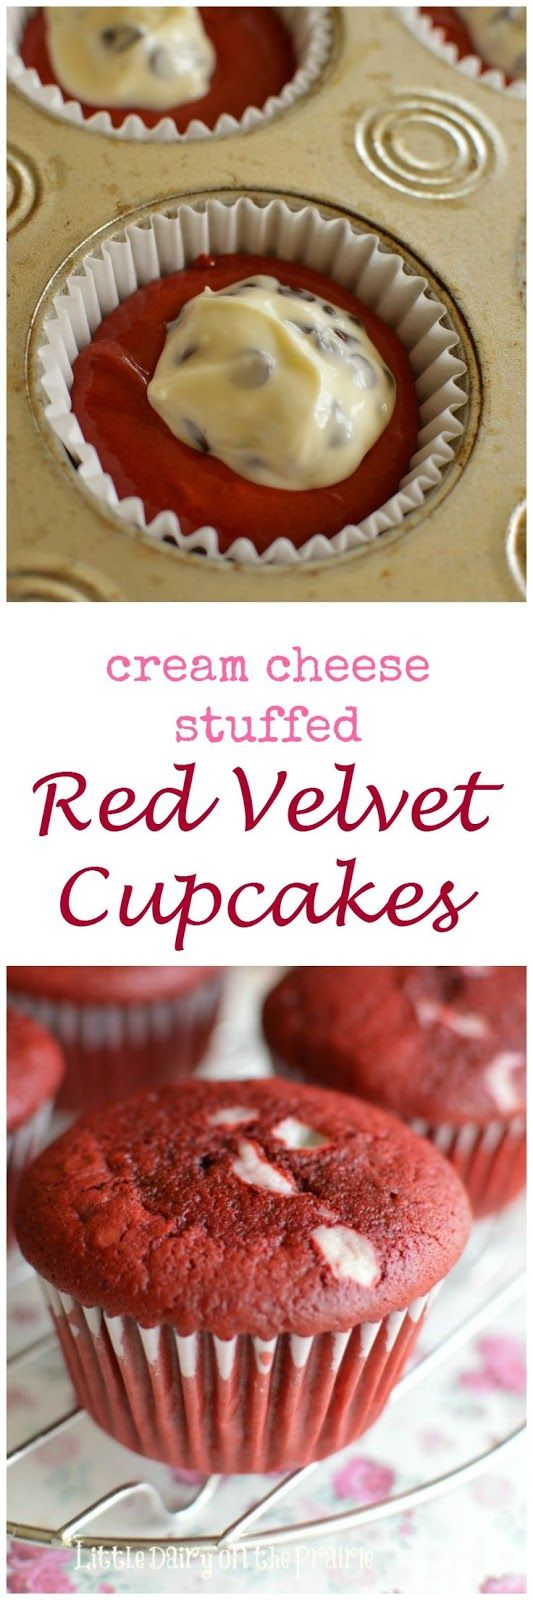 Red Velvet Cupcakes (with cream cheese surprise inside) - Pugul